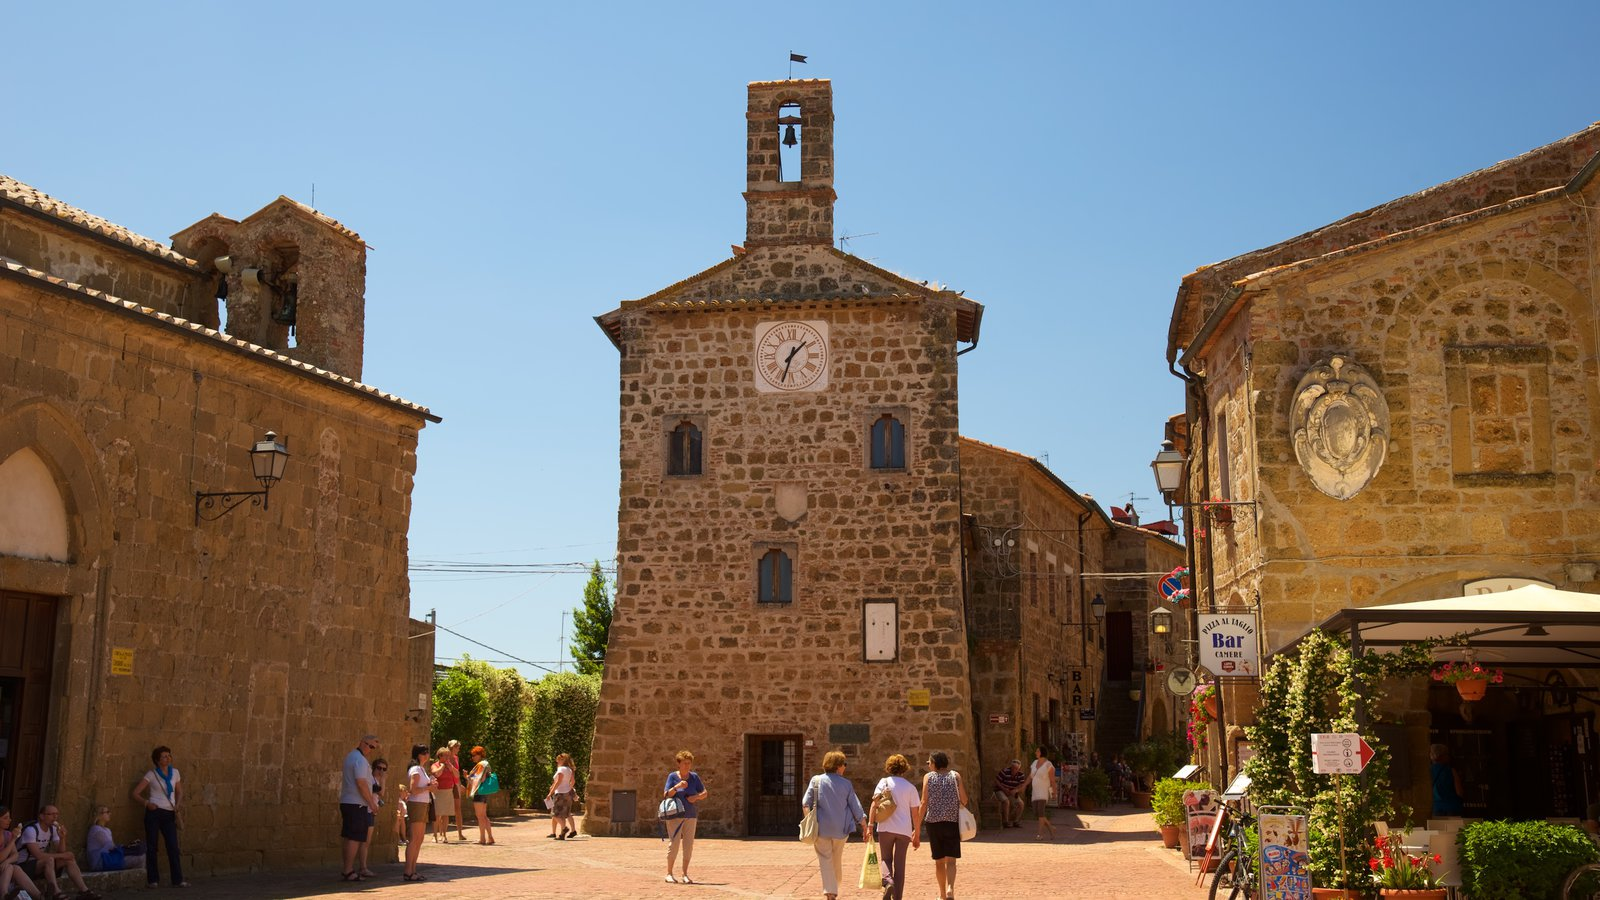 Sovana featuring heritage architecture